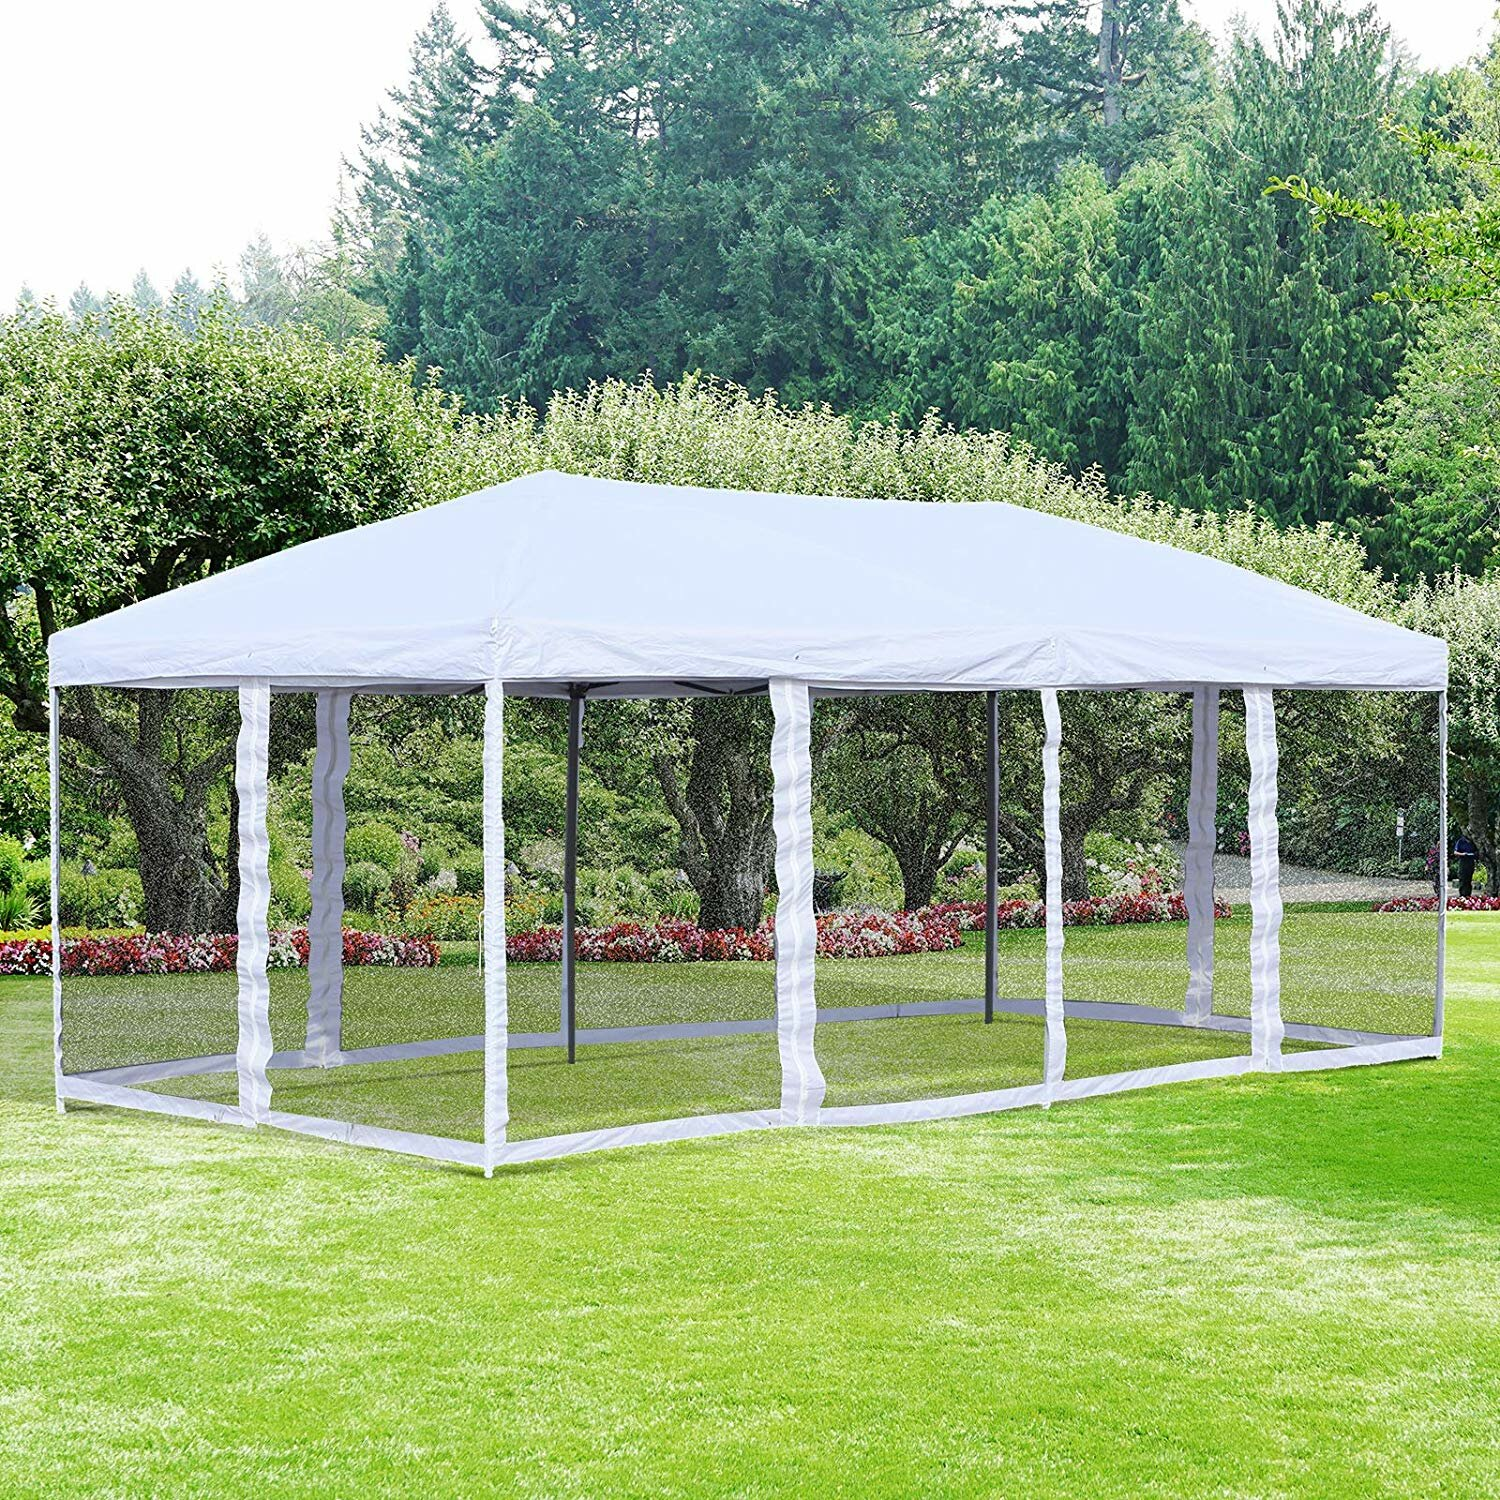 Outsunny 19 5 Ft W X 10 Ft D Steel Pop Up Canopy Reviews Wayfair